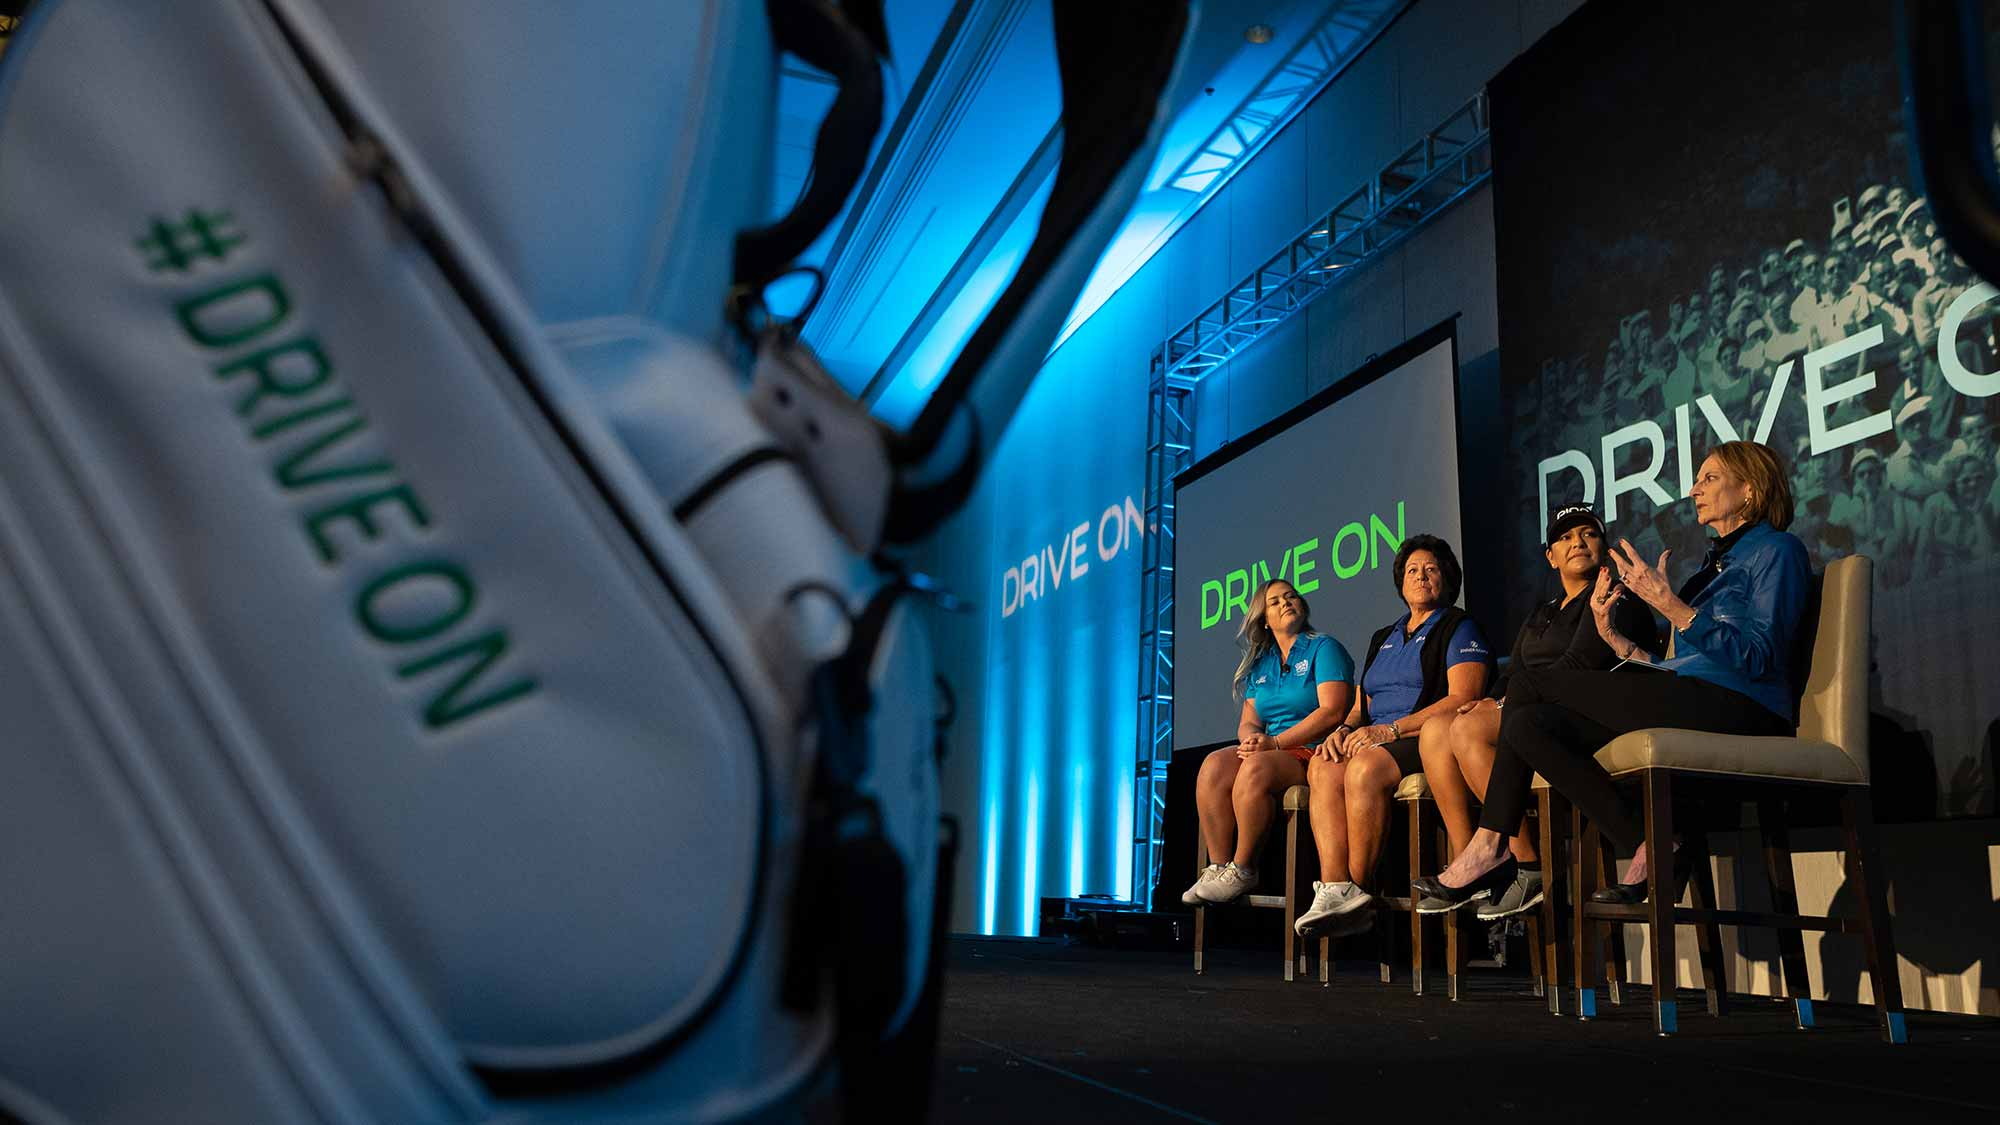 Stephanie Peareth, Nancy Lopez, Lizette Salas and Roberta Bowman speak during the LPGA Announcement of new brand positioning encouraging girls to #DriveOn at JW Marriott Phoenix Desert Ridge on March 20, 2019 in Phoenix, Arizona